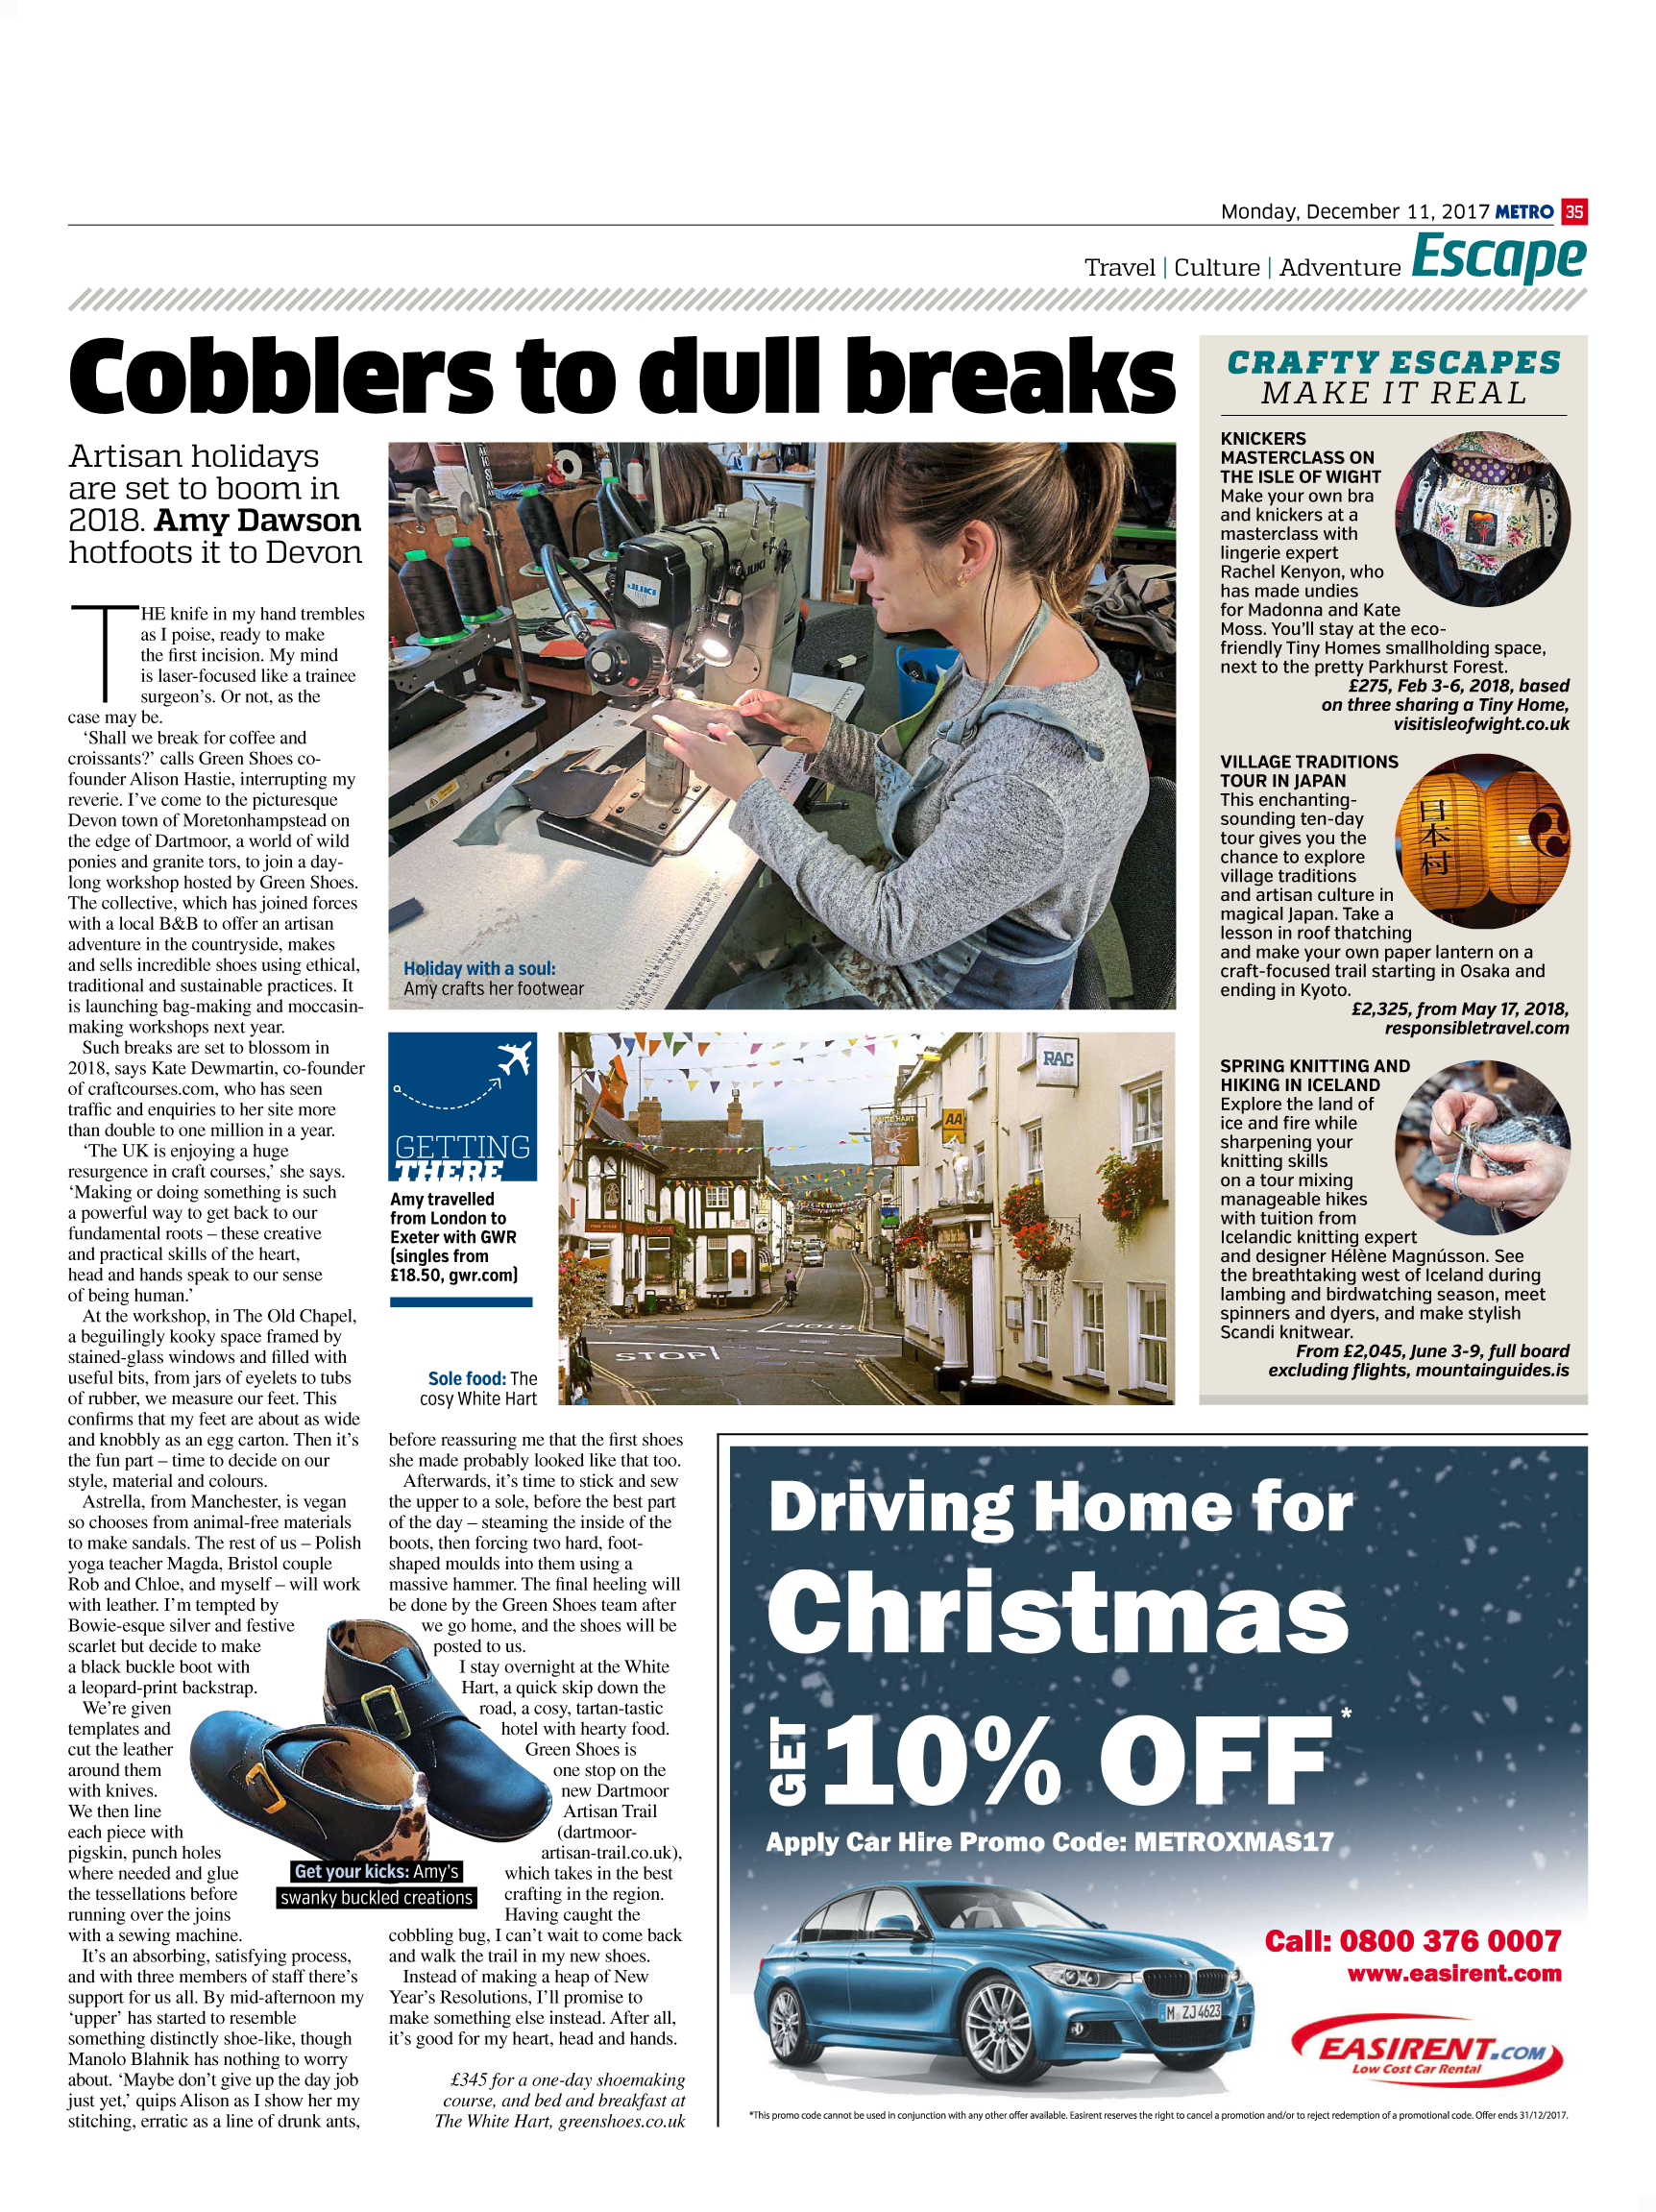 Cobblers To Dull Breaks (Metro, 11th Dec 2017)